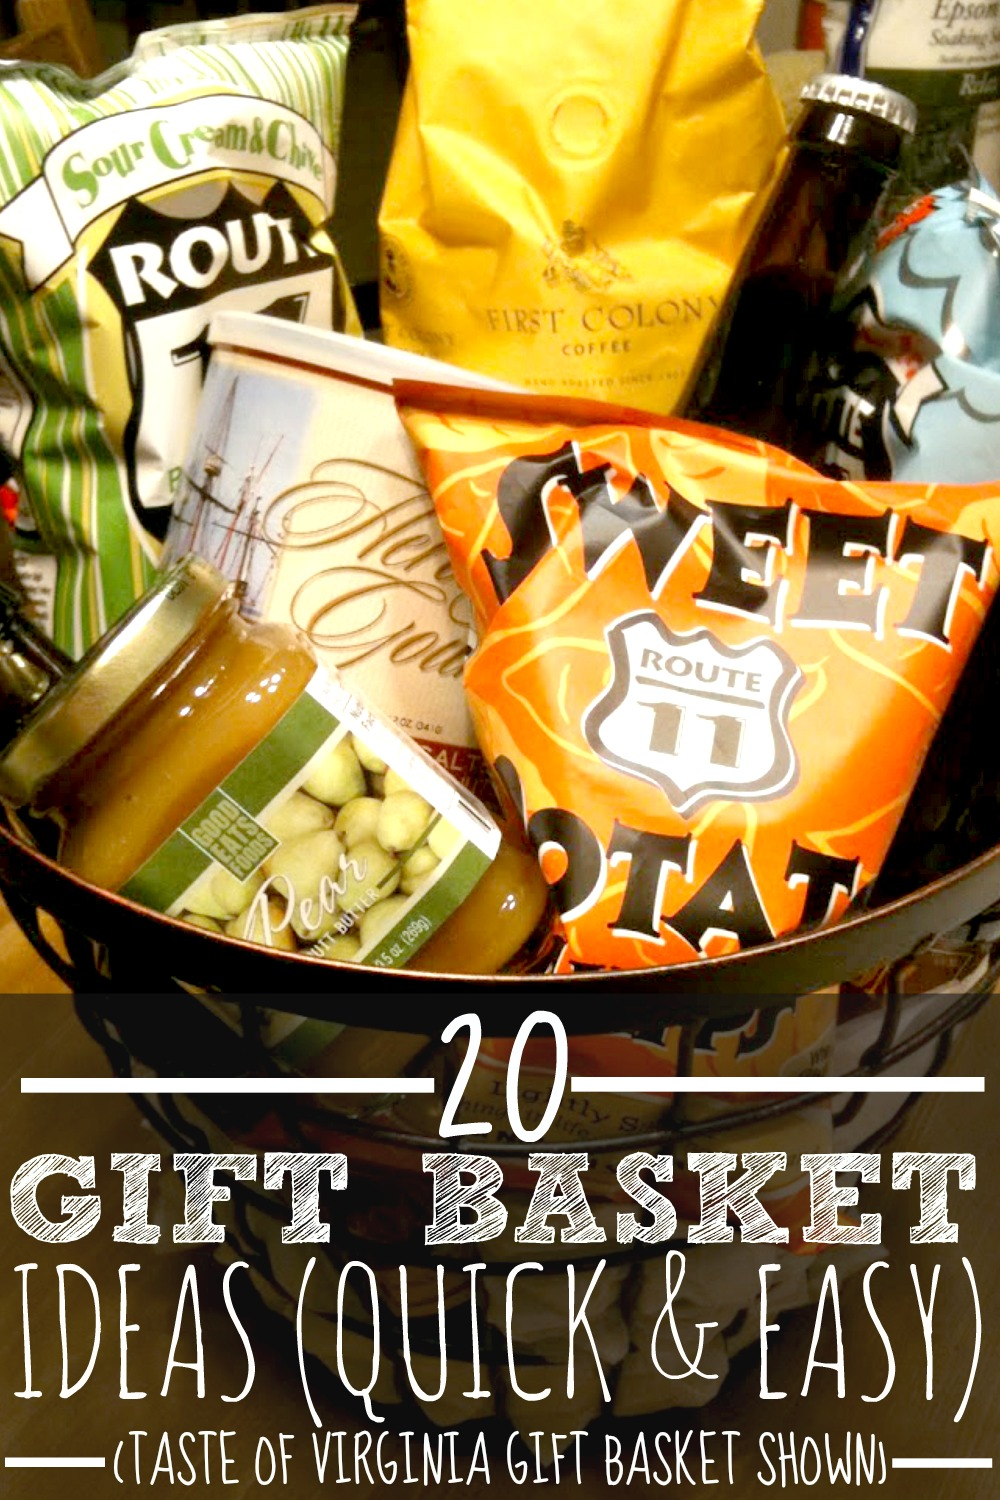 20 Gift basket ideas for every occasion. Quick and easy. Such fantastic and simple gift basket ideas! I just put together a $10 gift basket from this list! Thank you!